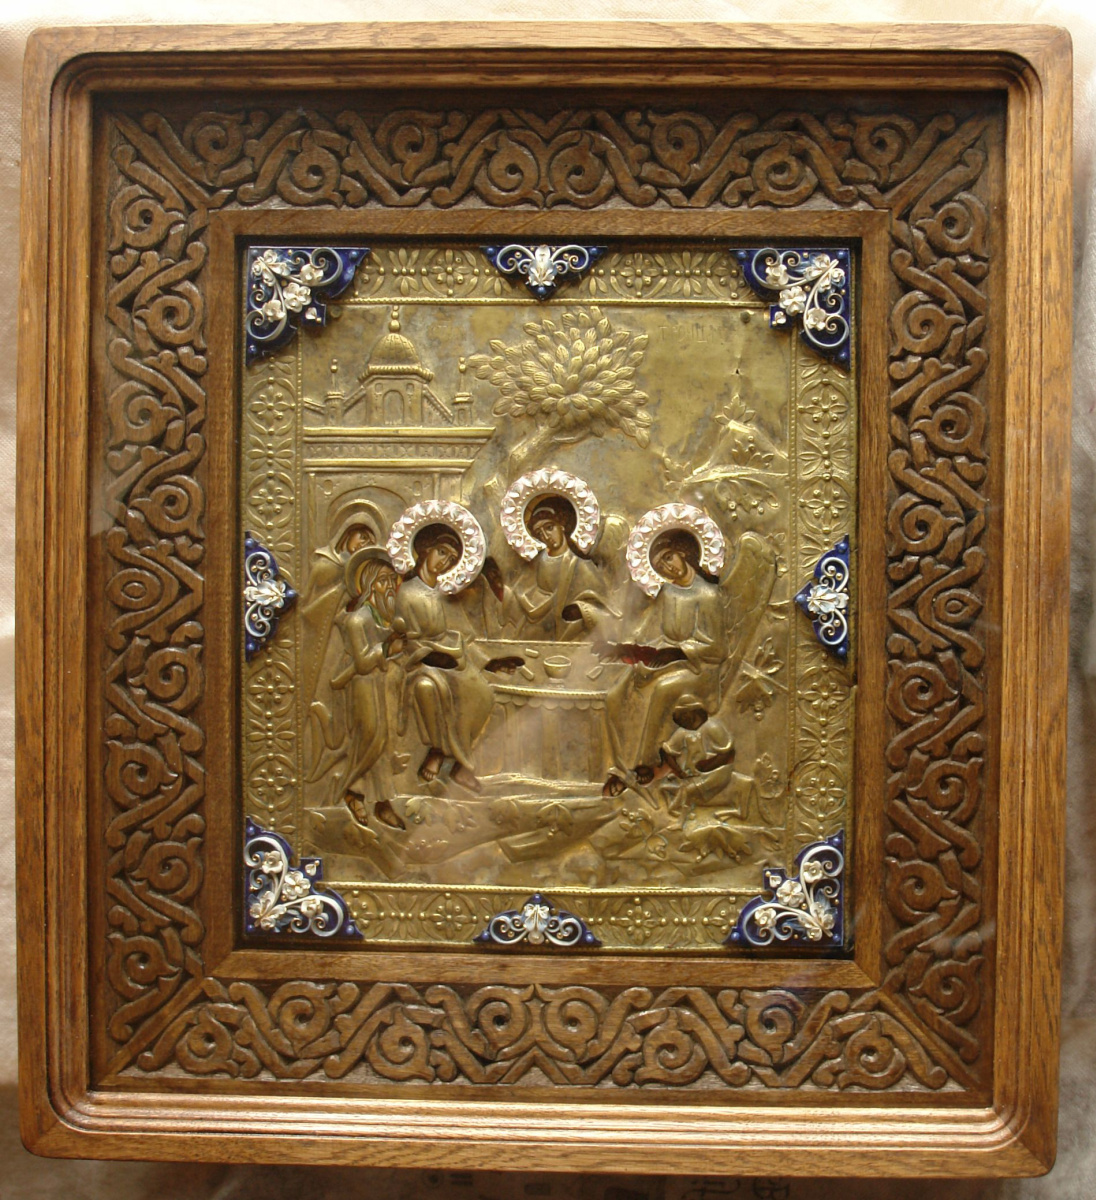 Moscow Icon Painting Workshop. The most Holy Trinity in the salary of the 19th century with porcelain inserts